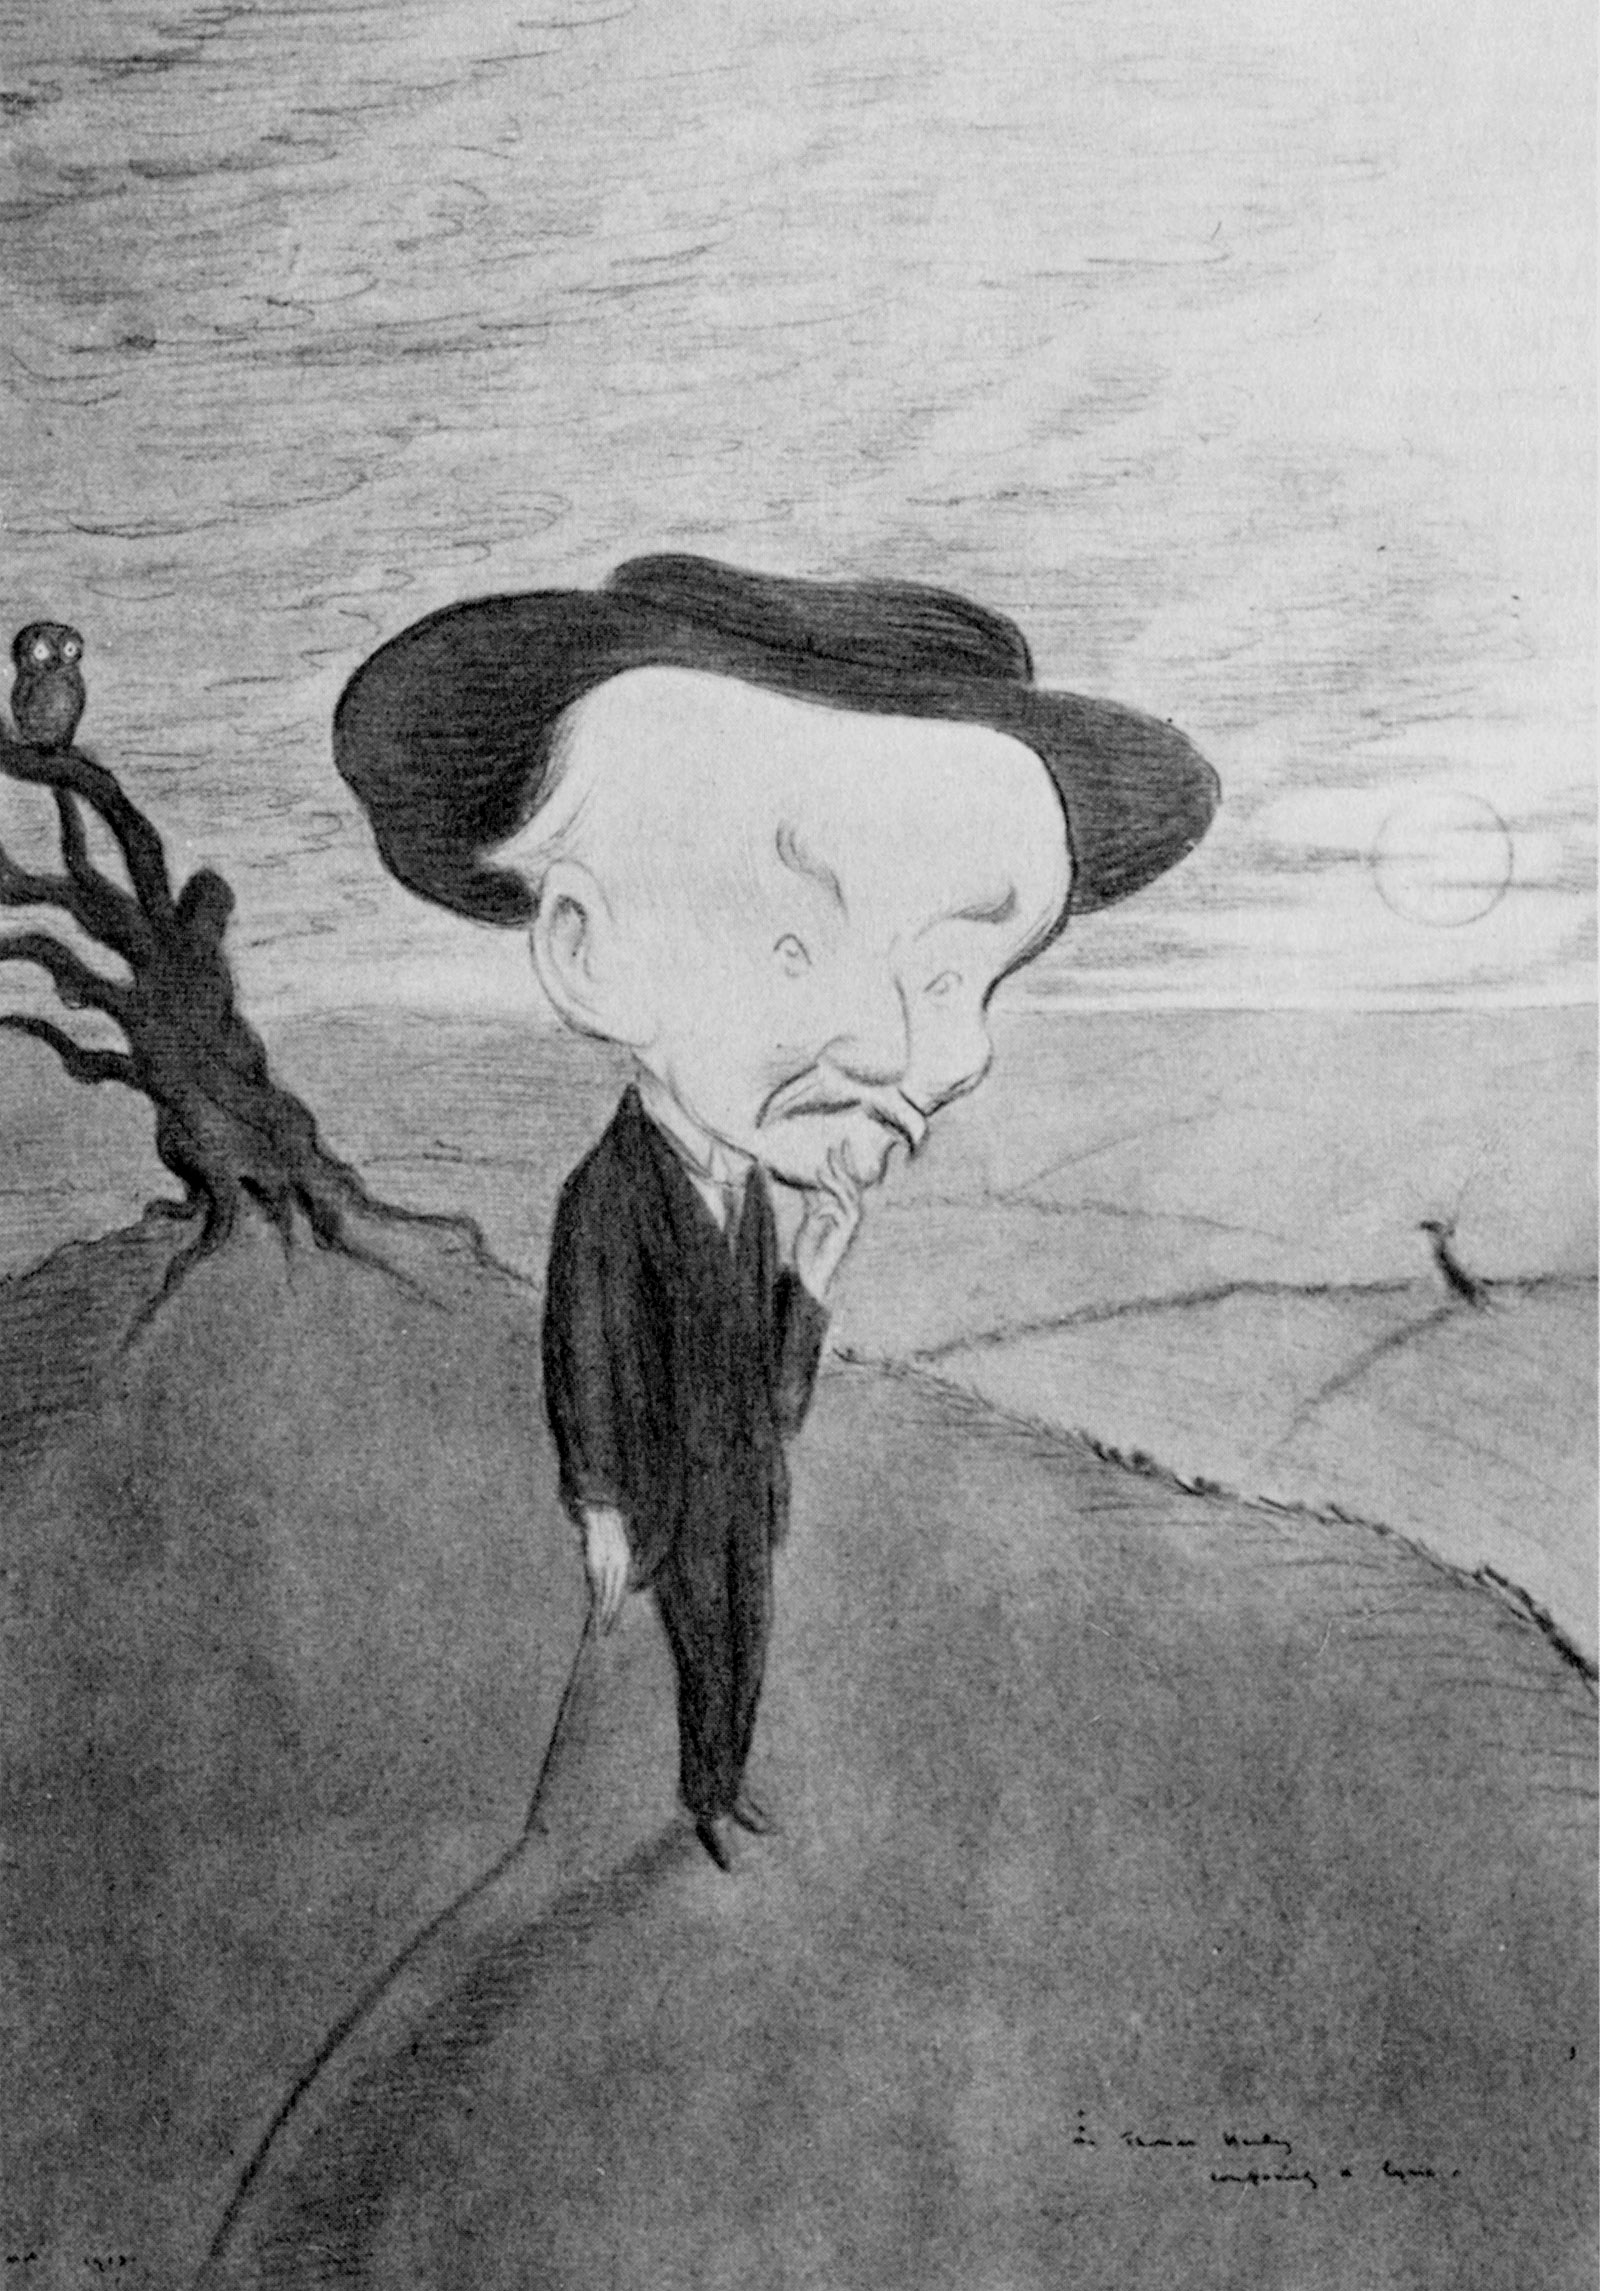 'Mr. Thomas Hardy composing a lyric'; drawing by Max Beerbohm, 1913